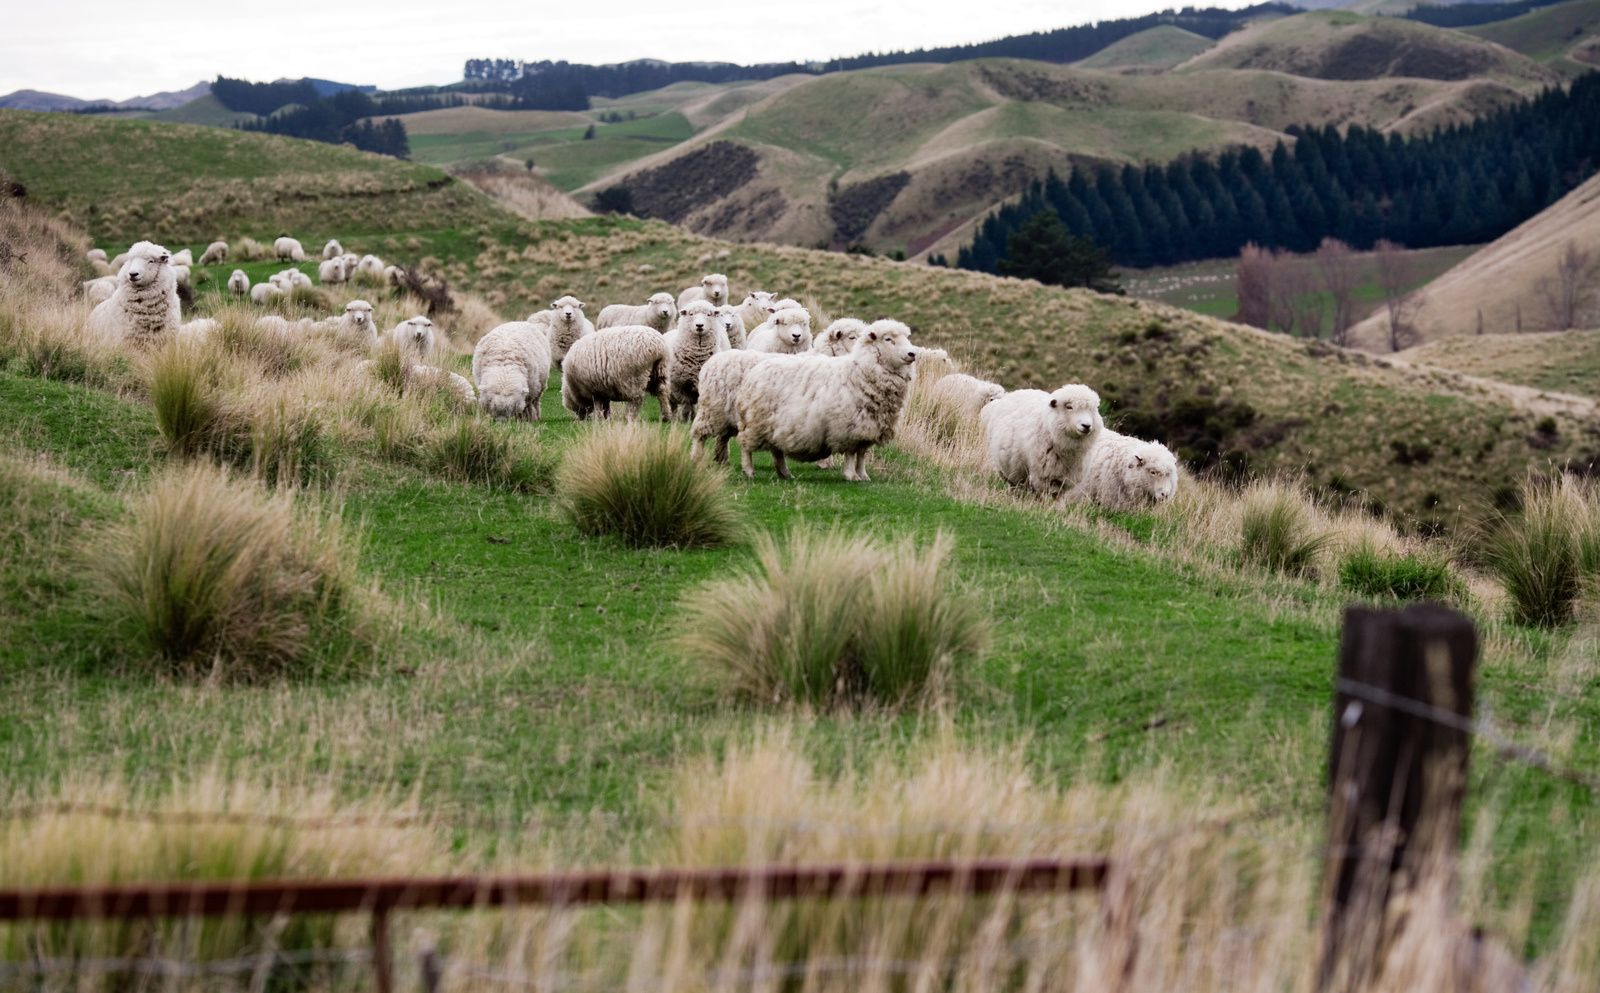 Rural New Zeland - Source: wikimedia.org